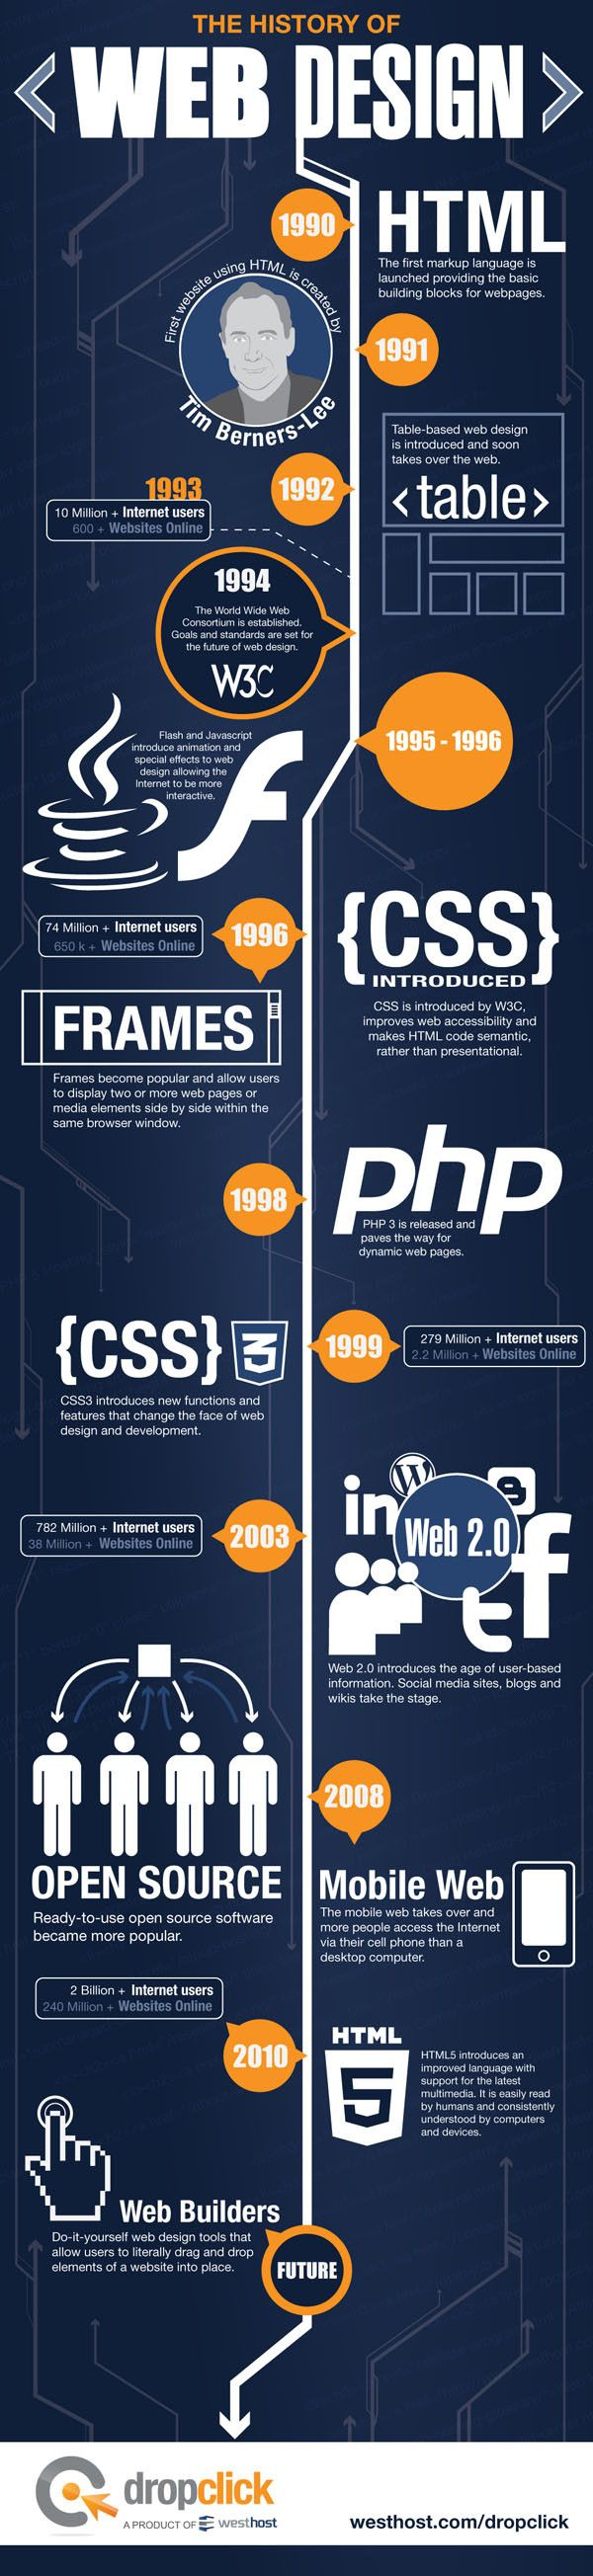 The History Of Web Design #infographic http://amfahtech.co.uk